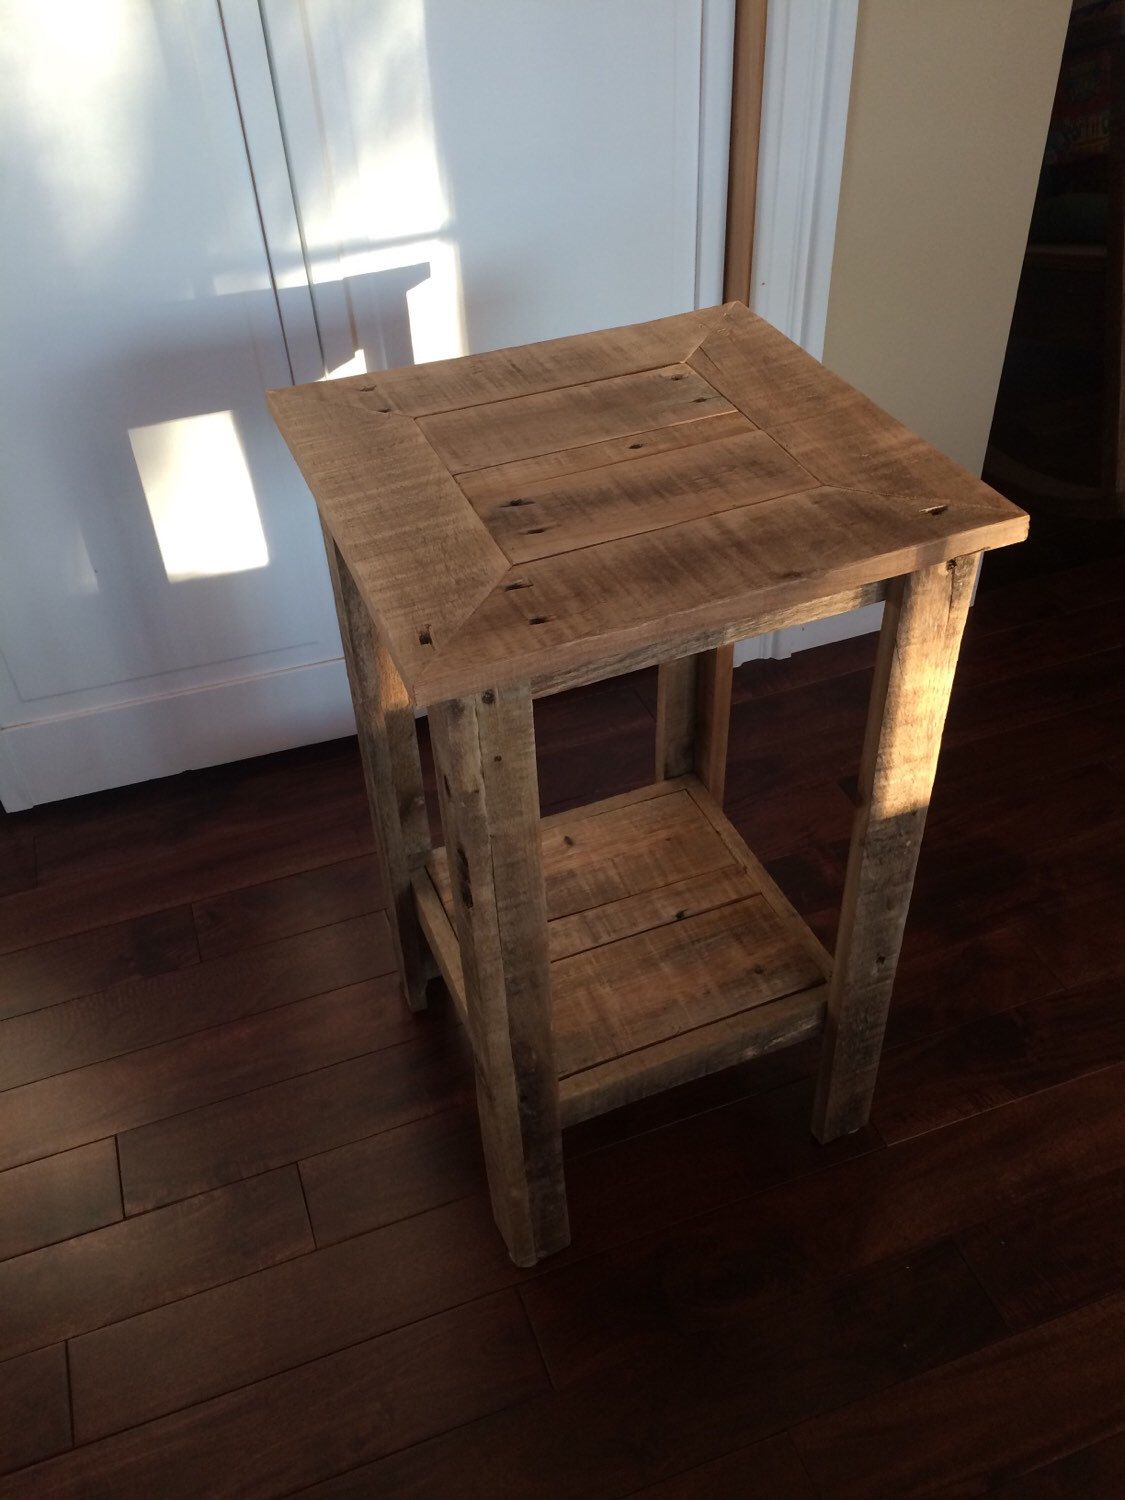 Wooden End Table Rustic Pallet Wood End Table Night Stand Side Table